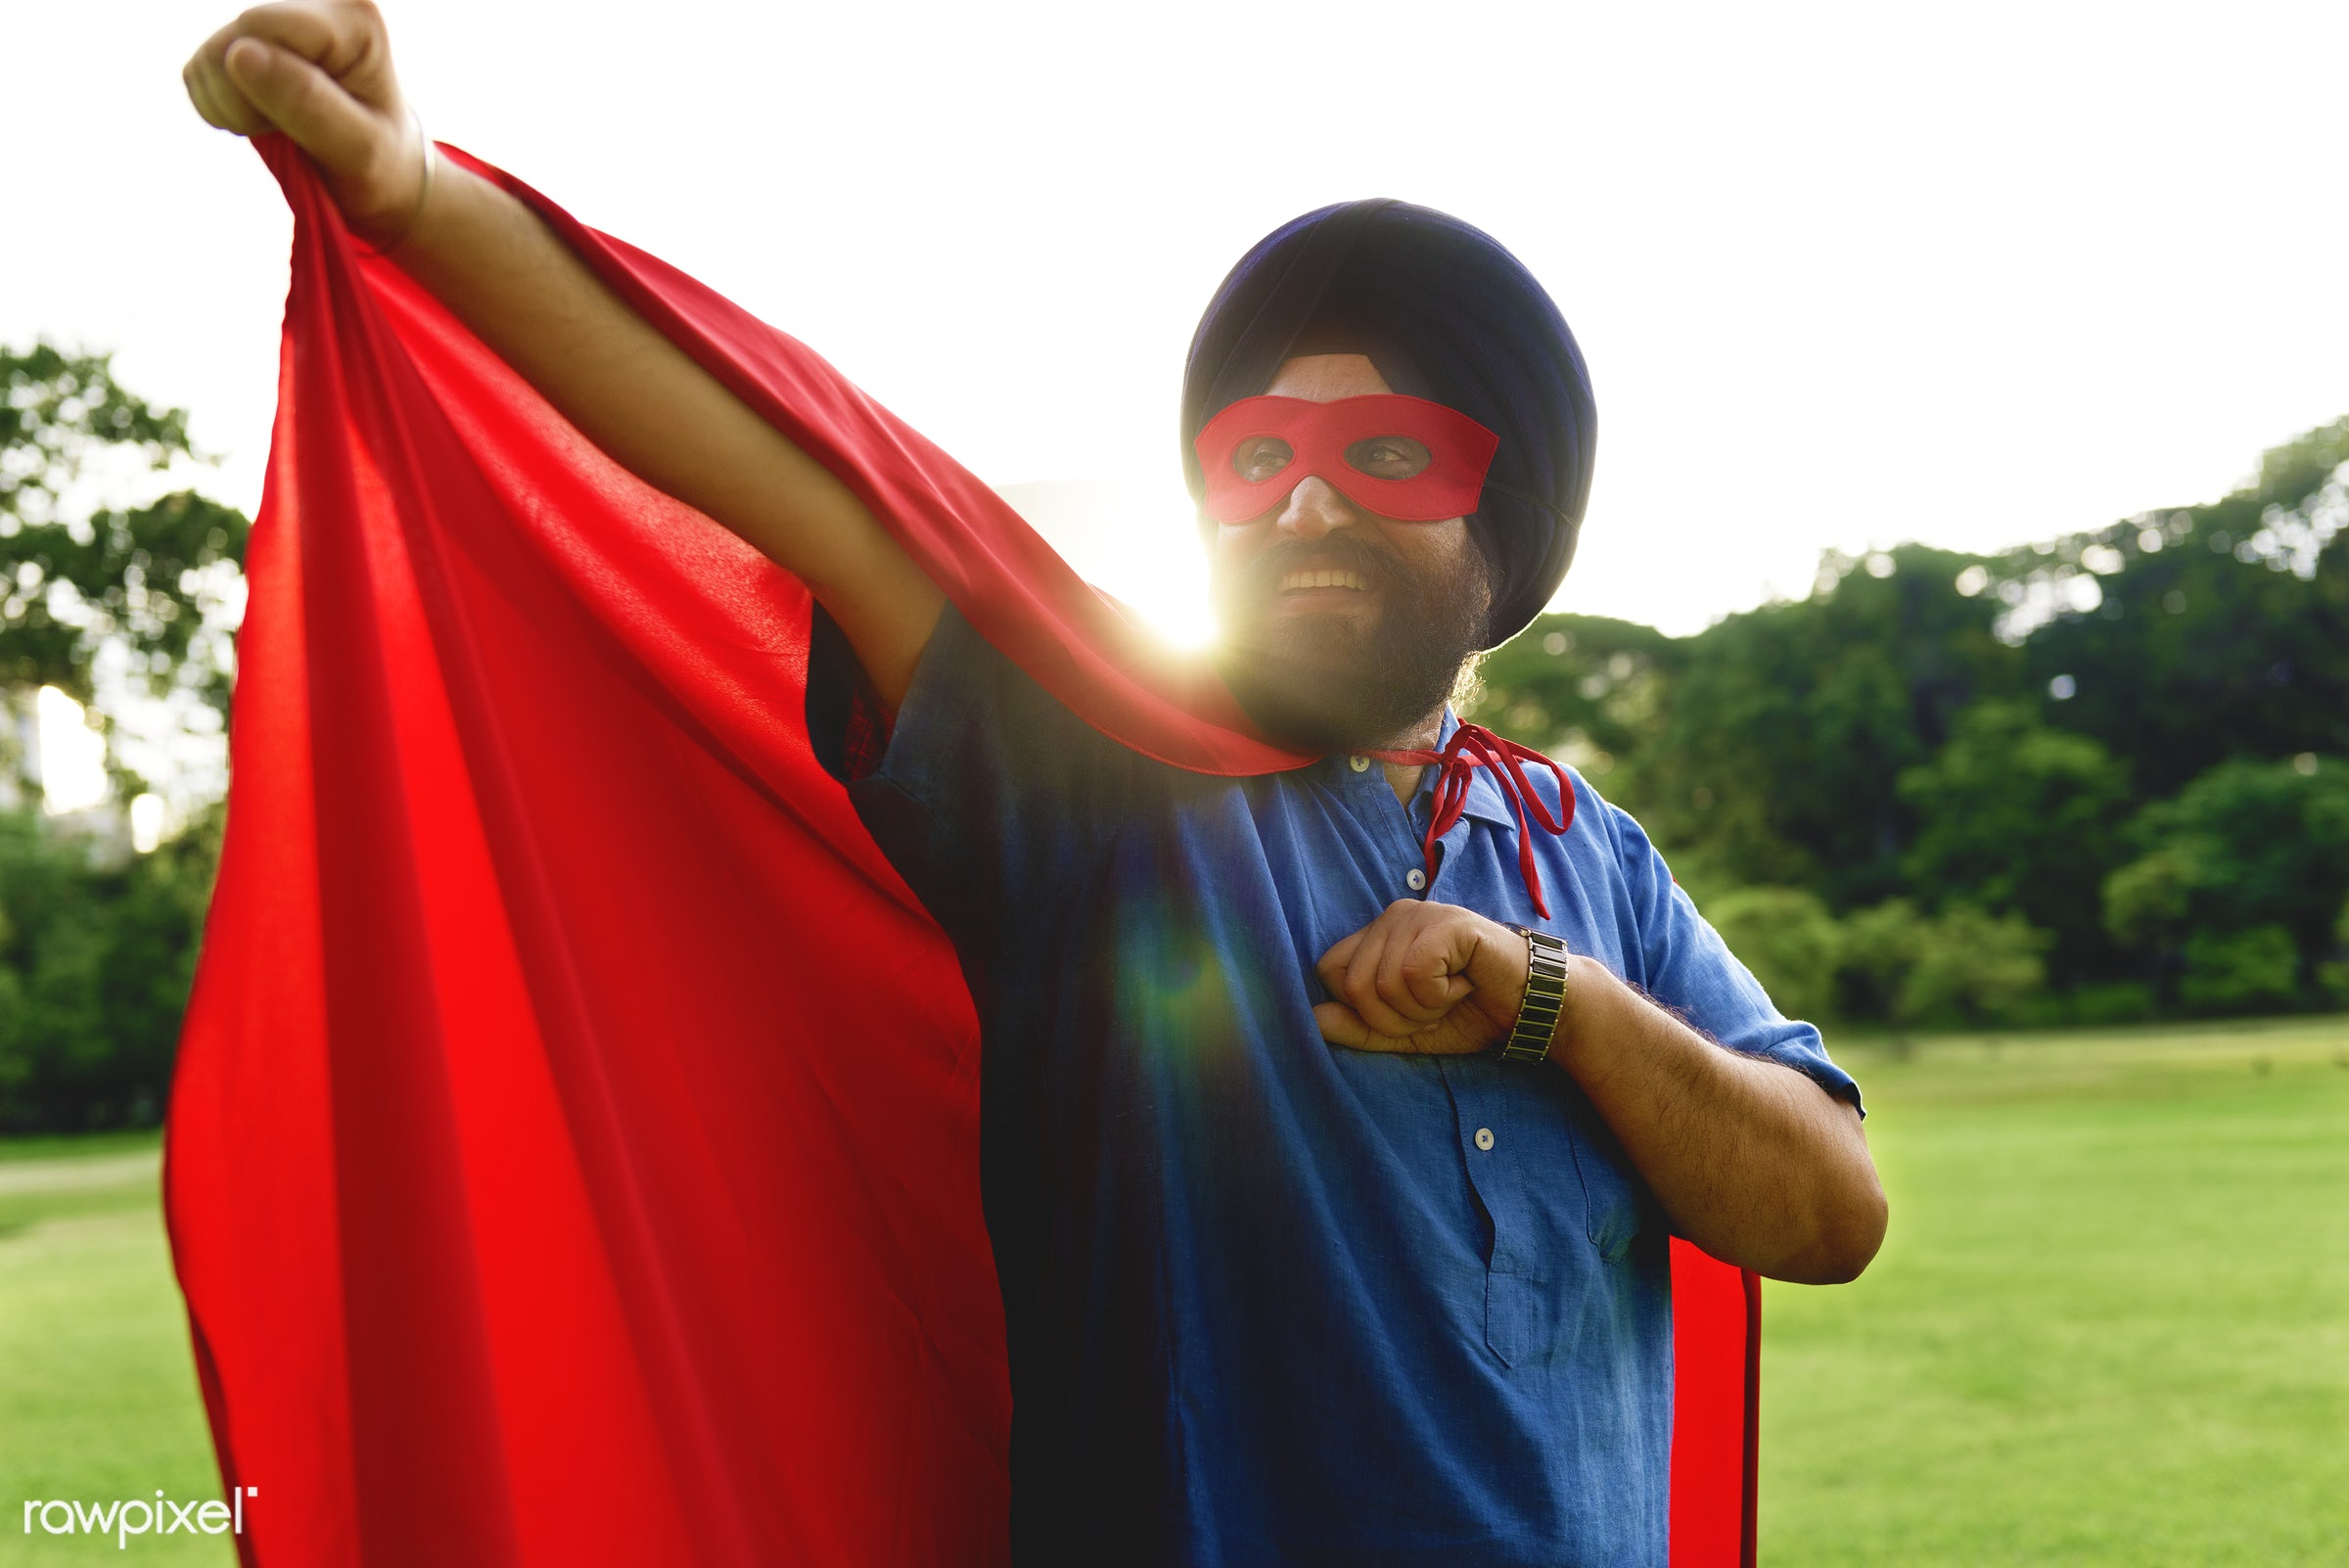 Senior superhero Sikh Indian man in the park - activity, adult, asian, bonding, care, casual, cheerful, cloak, costume, day...